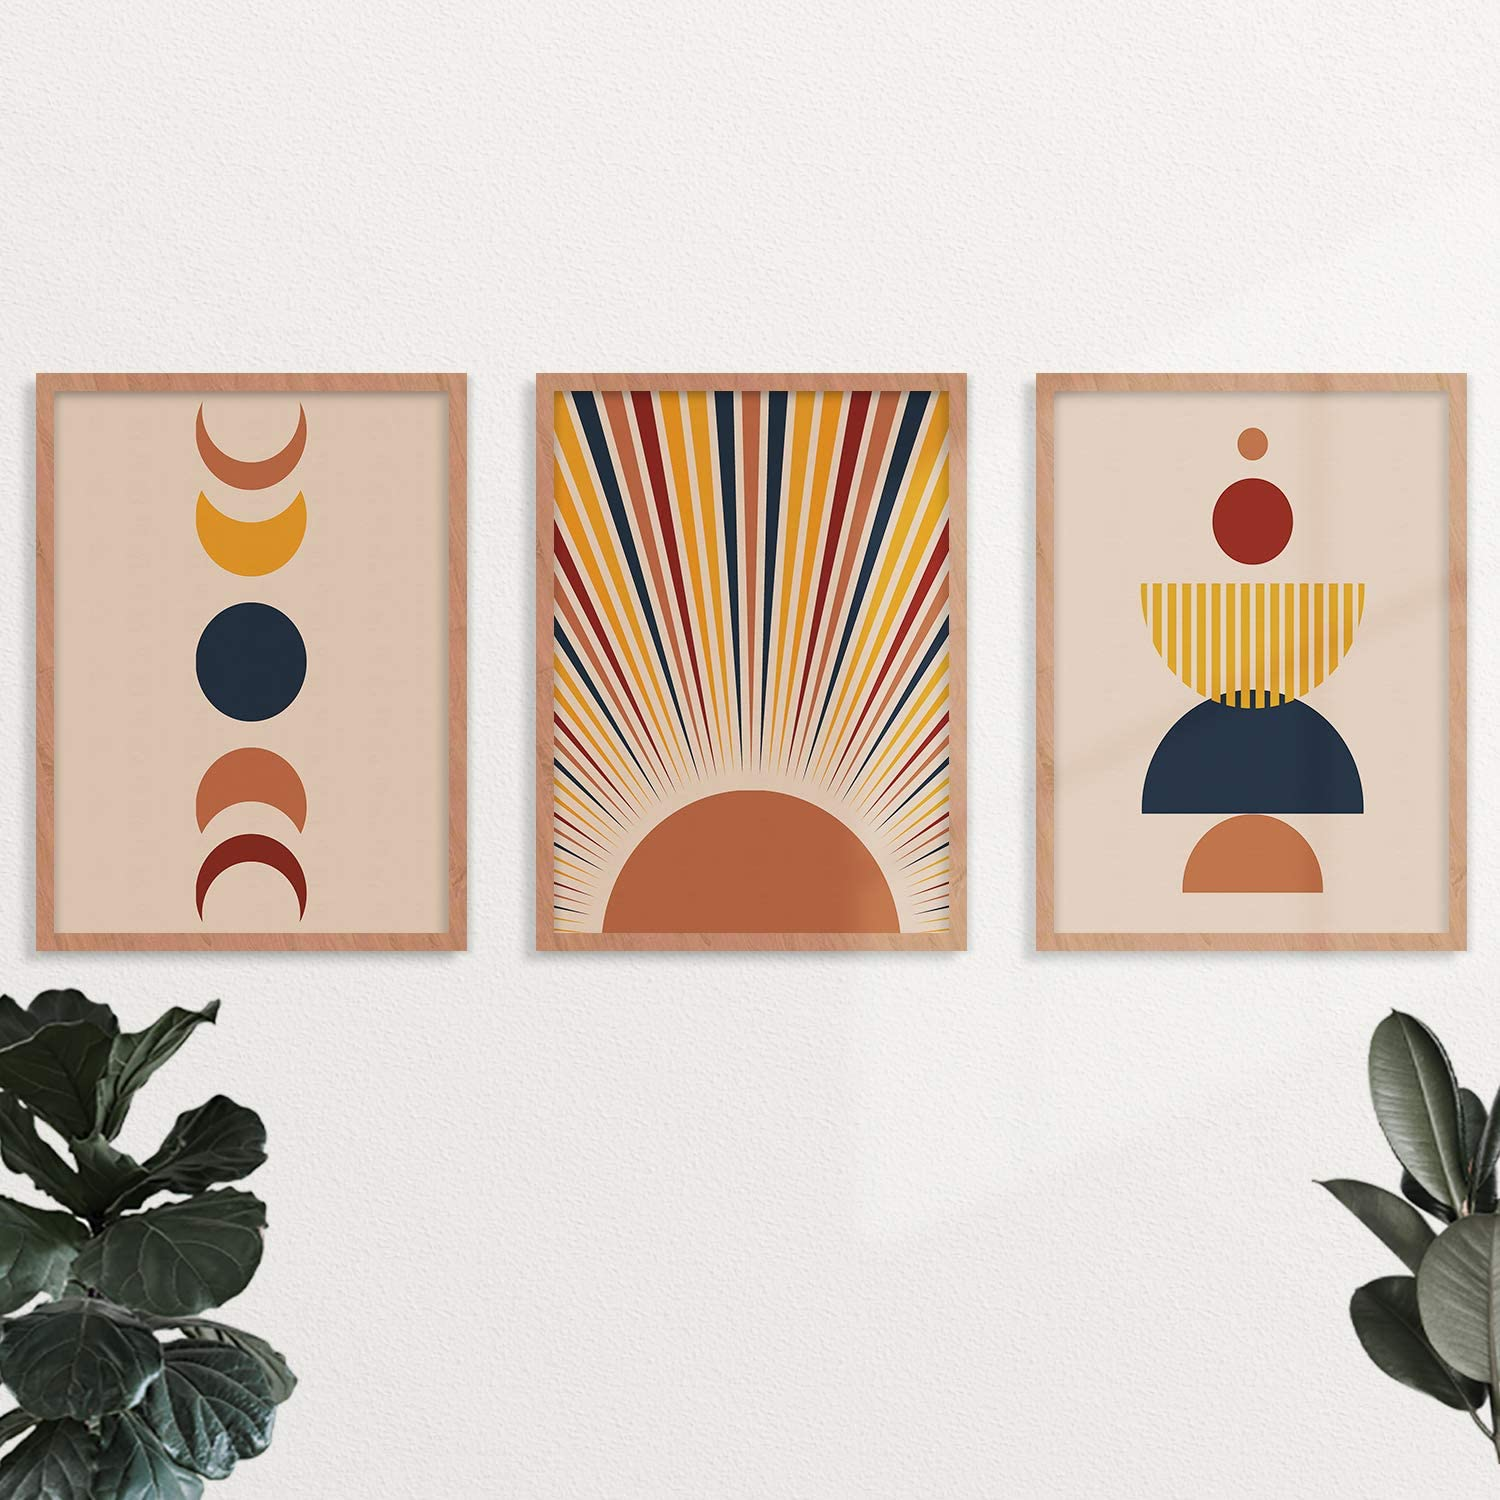 YUMKNOW Boho Sun Wall Art - Umframed 8x10 Set of 3, Drawing Line Mid Century Modern Decor for Bedroom, Minimalist Wall Prints for Living Room, Terracotta Moon Aesthetic Posters Bathroom Office Gifts